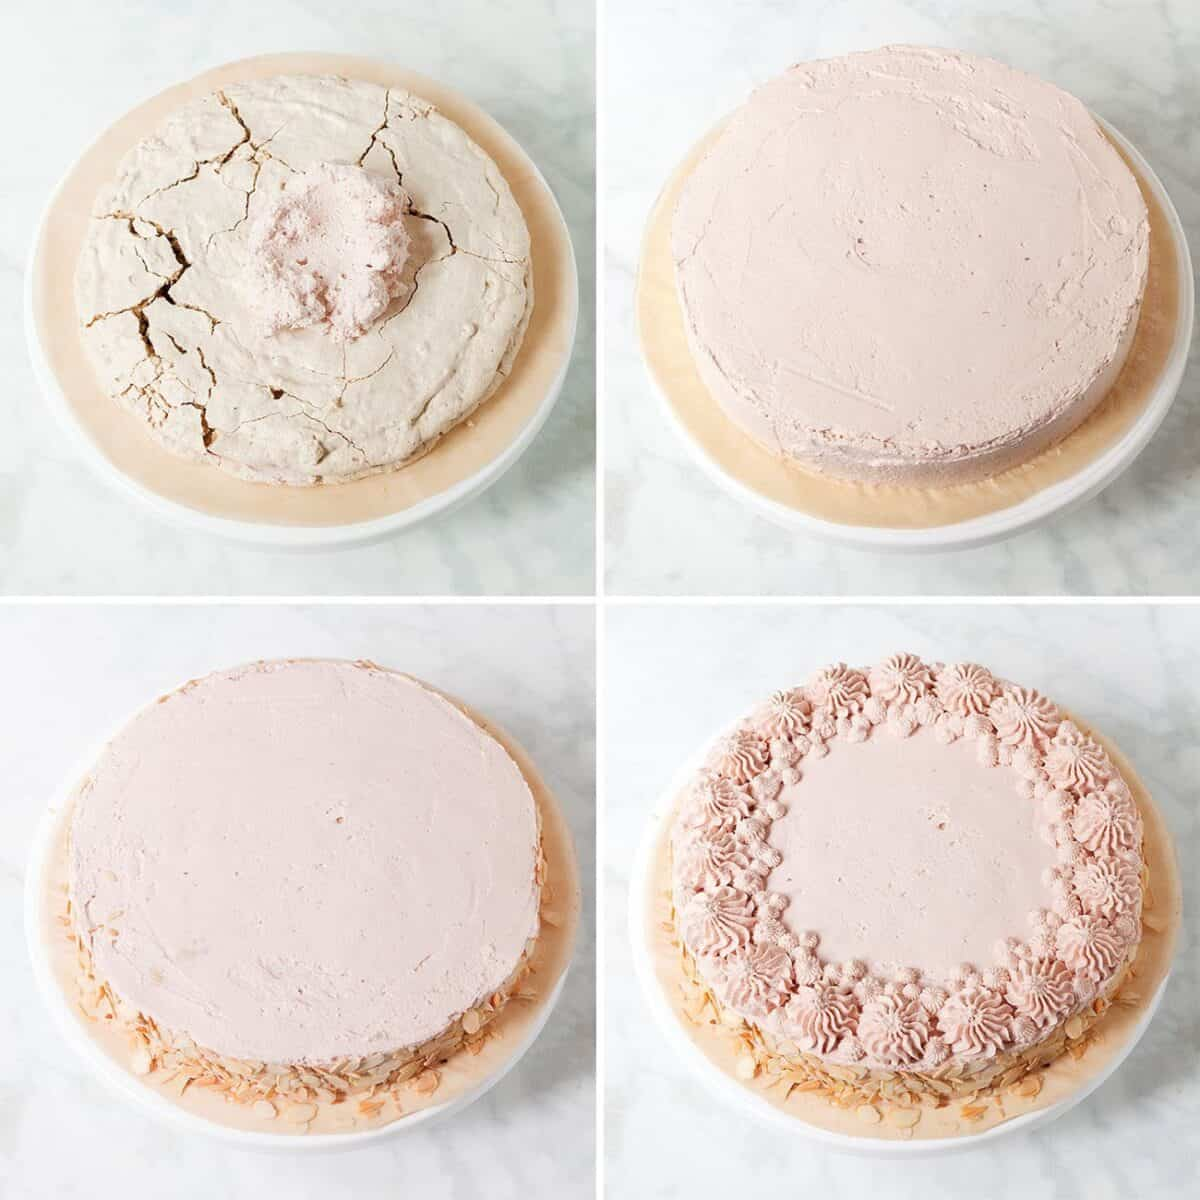 Decorating a raspberry dacquoise cake step by step